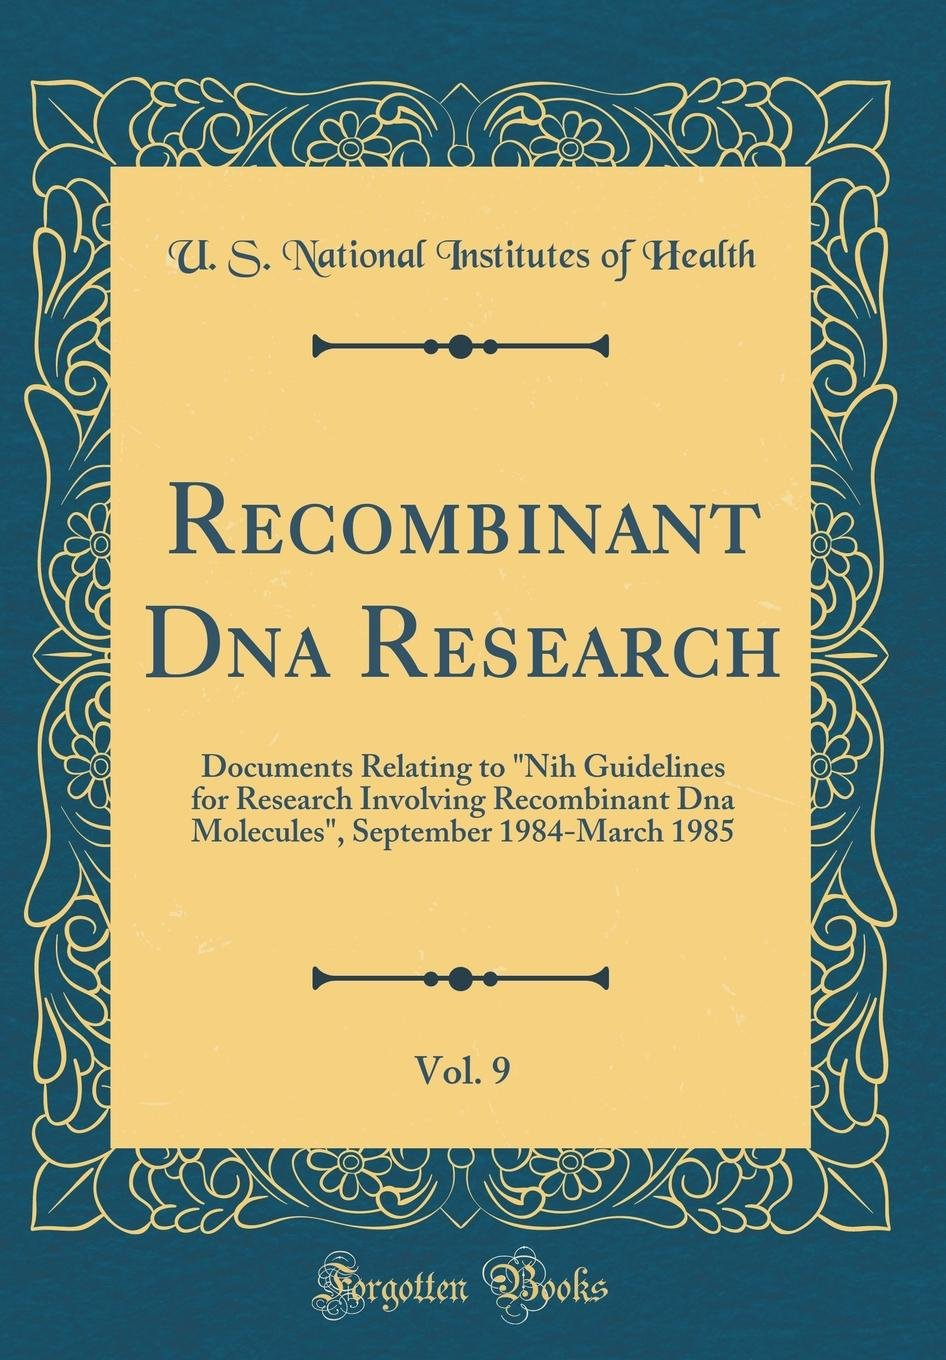 Download Recombinant DNA Research, Vol. 9: Documents Relating to Nih Guidelines for Research Involving Recombinant DNA Molecules, September 1984-March 1985 (Classic Reprint) PDF